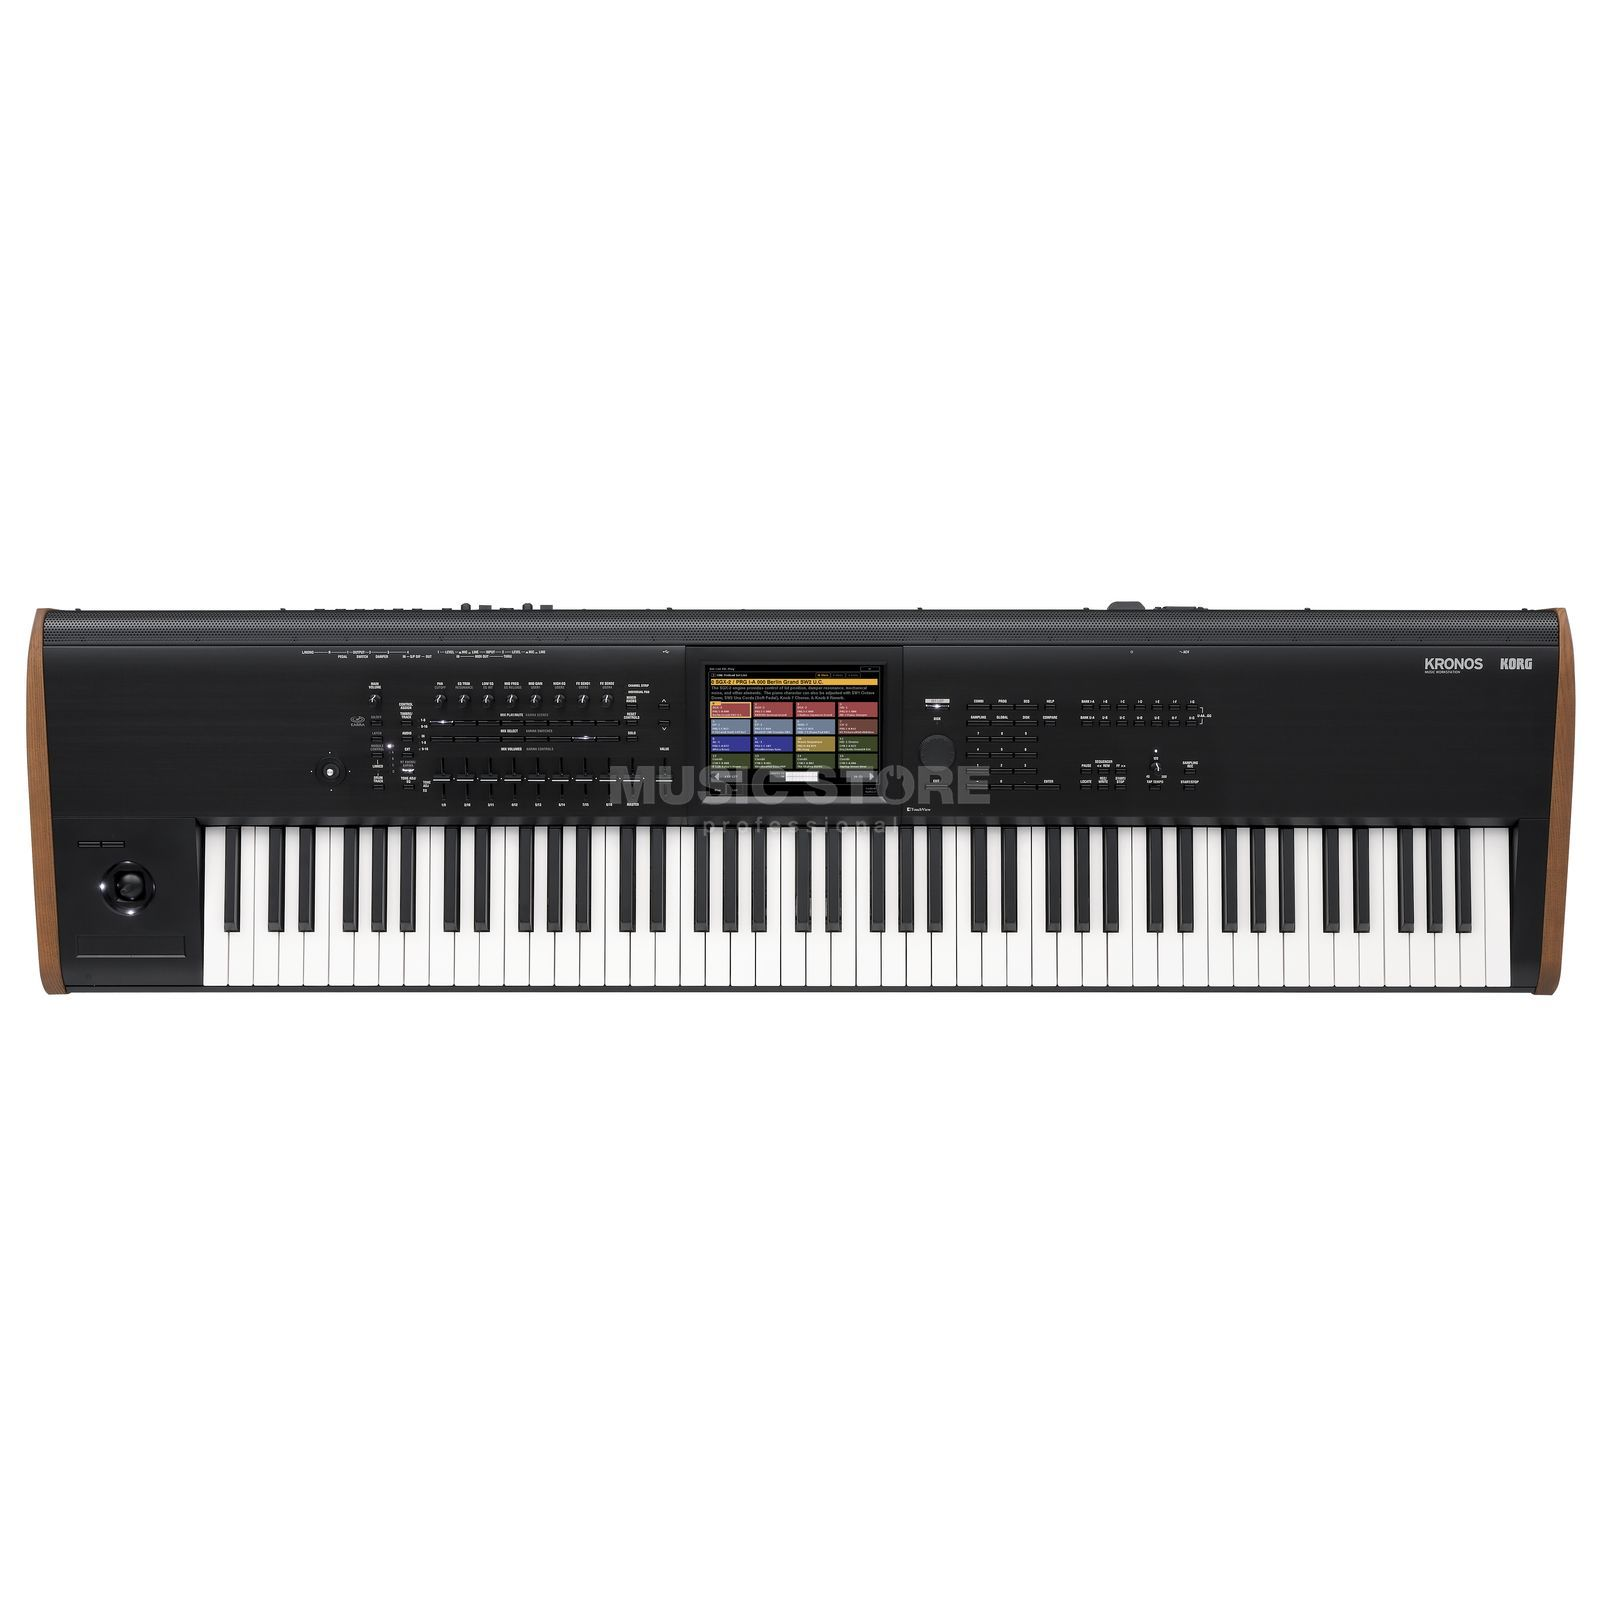 Korg Kronos 88, Model 2015 Synthesizer Workstation Produktbillede